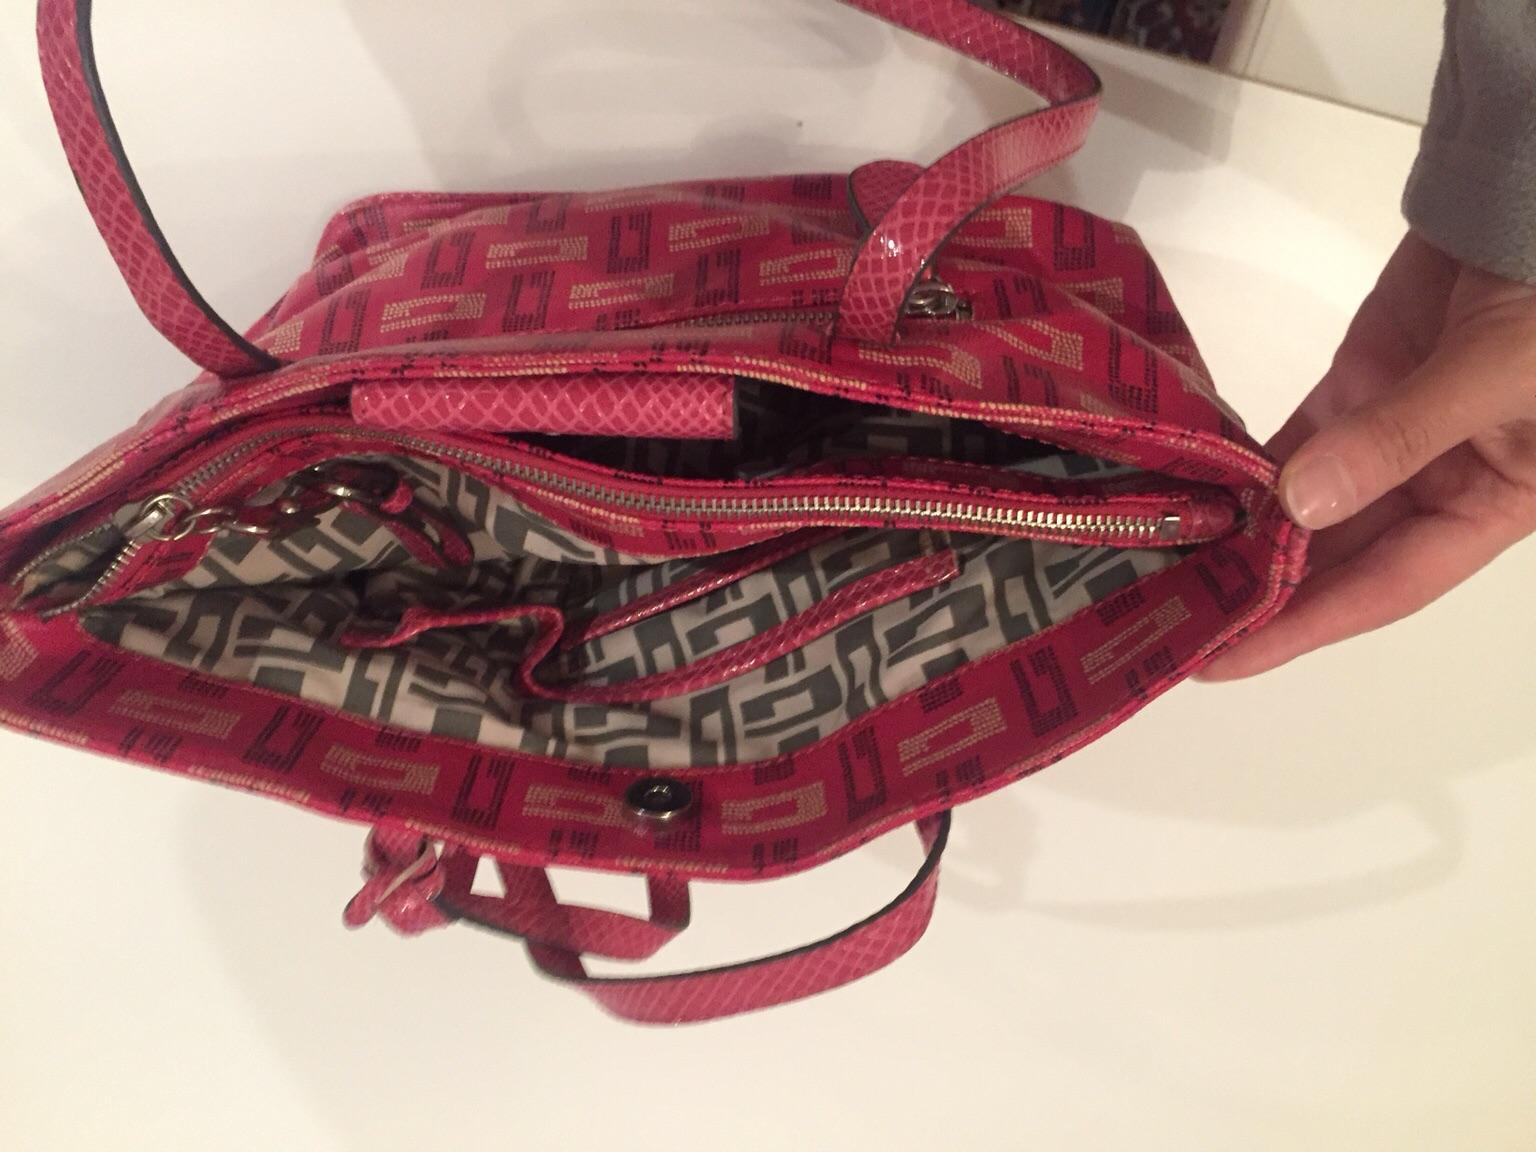 Borsa Guess fucsia in 00178 Roma for €35.00 Shpock